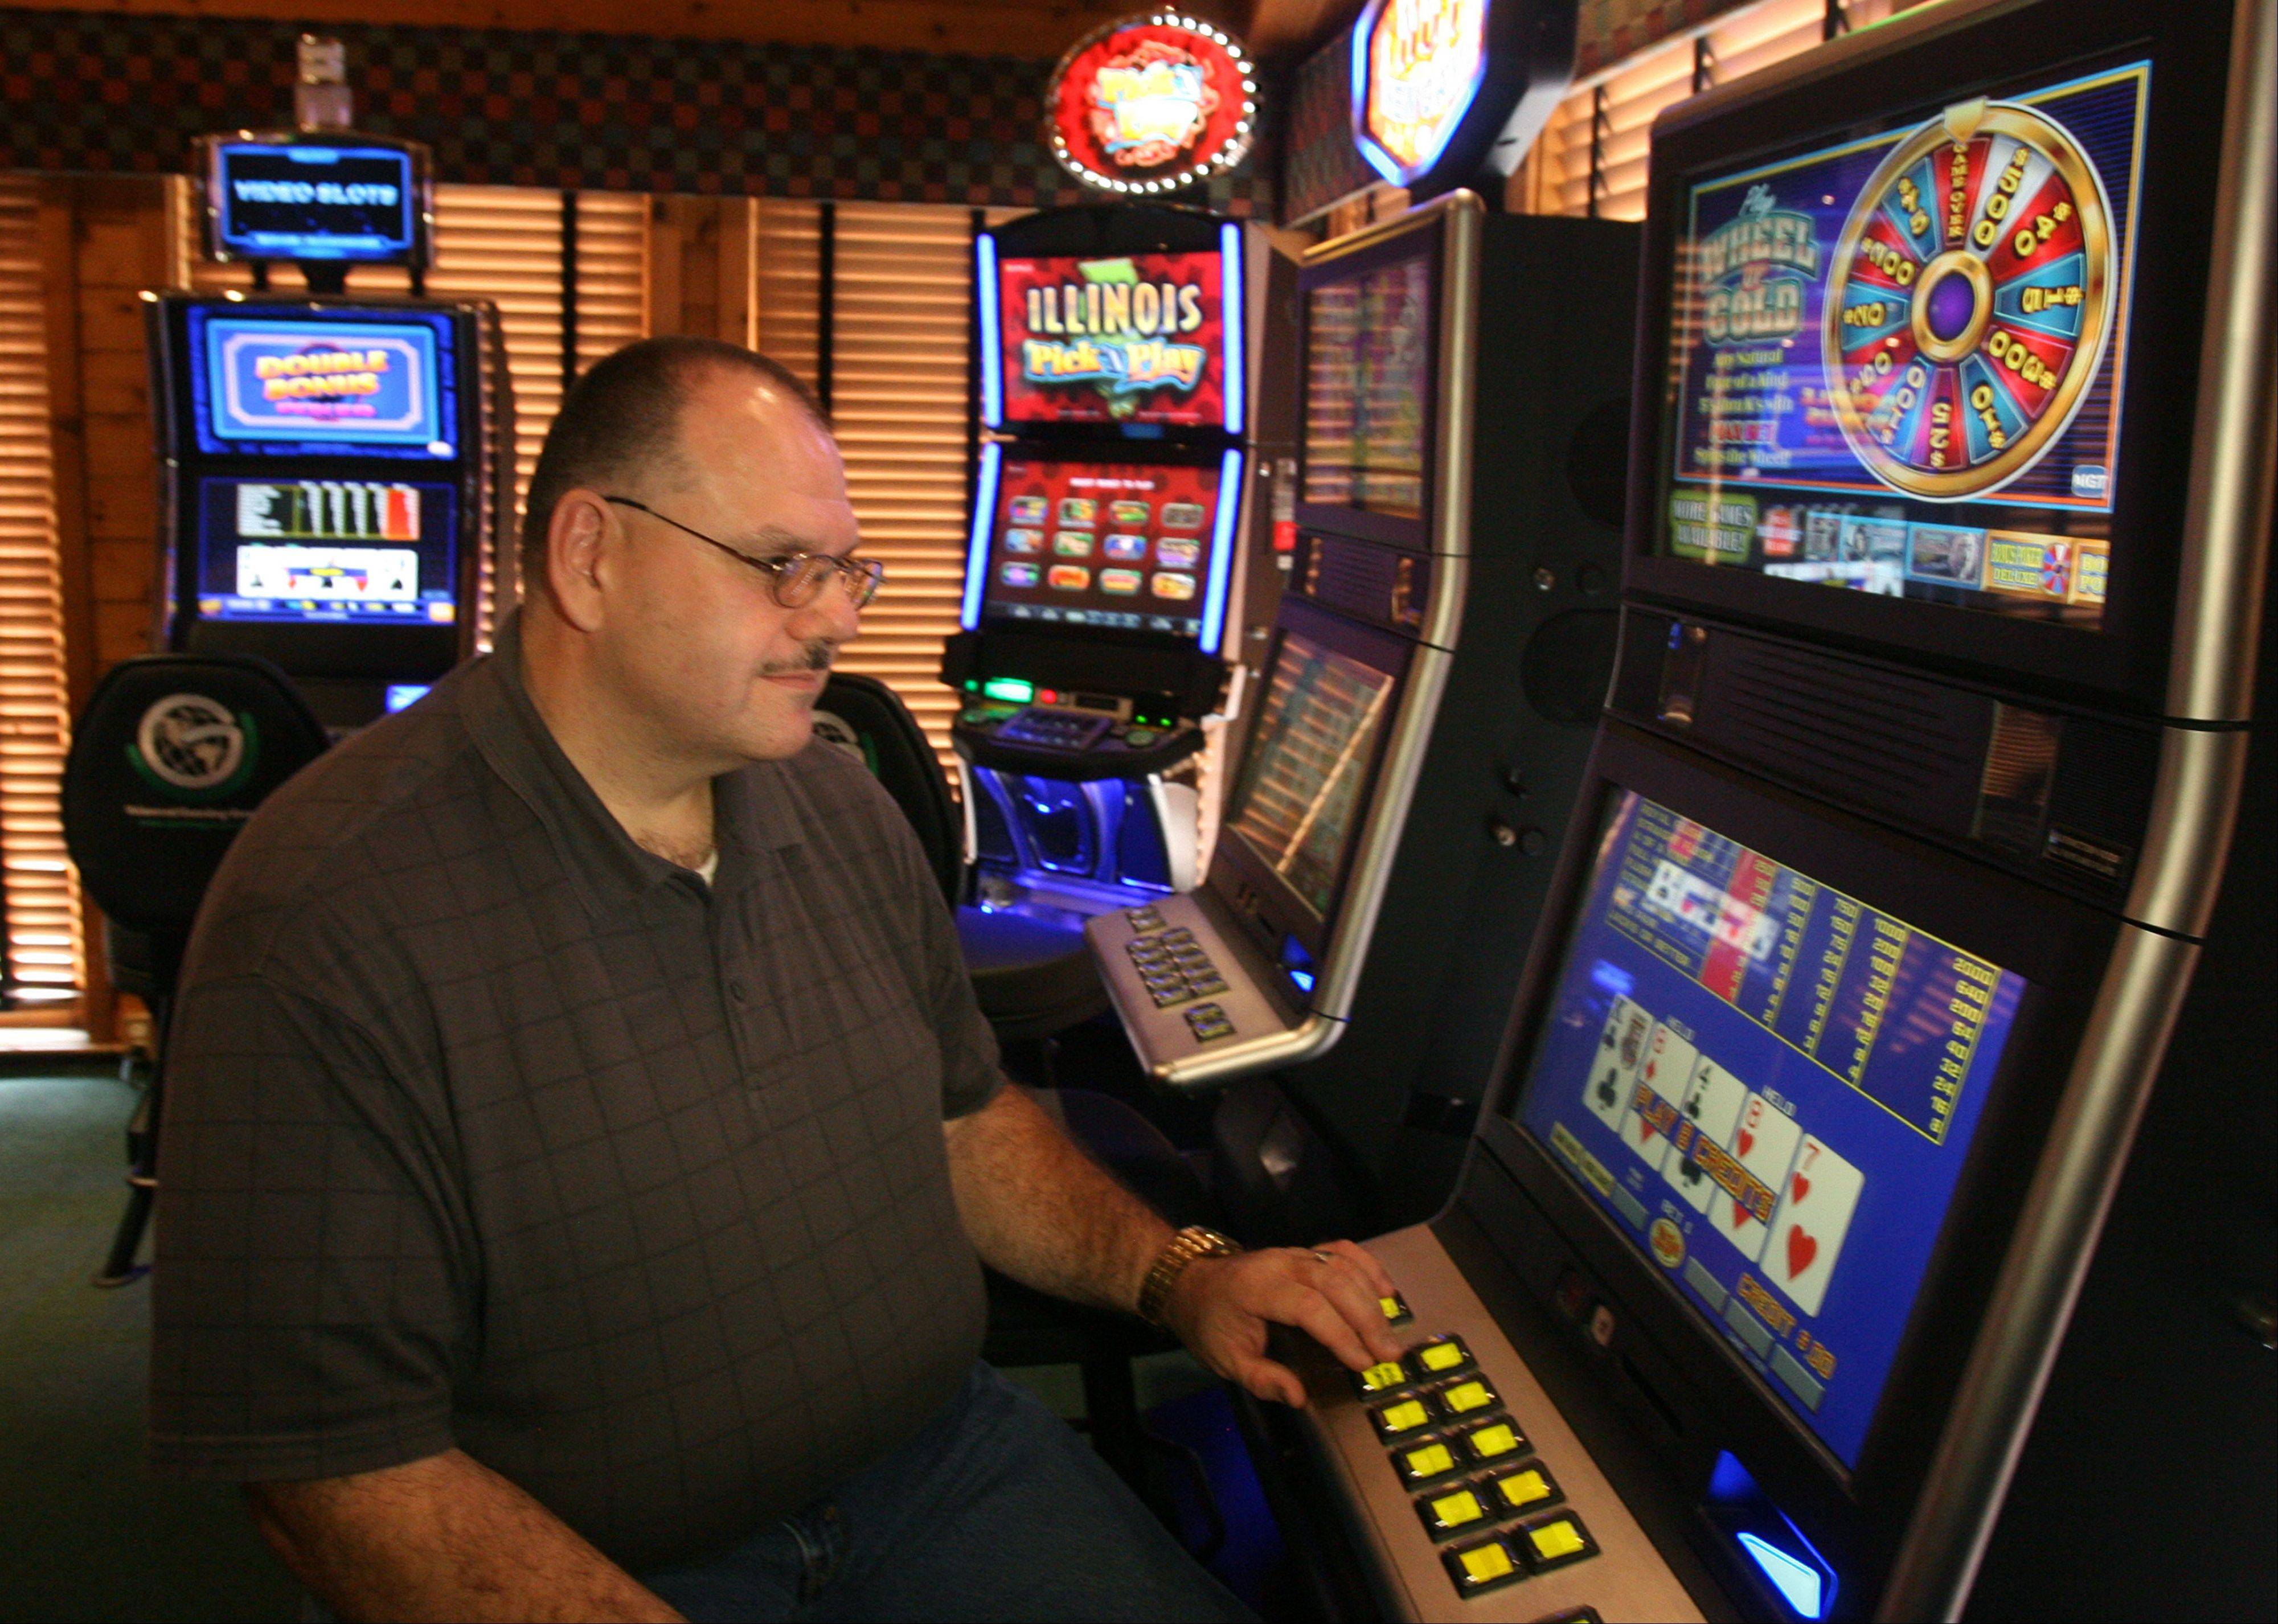 Mundelein delays video gambling vote